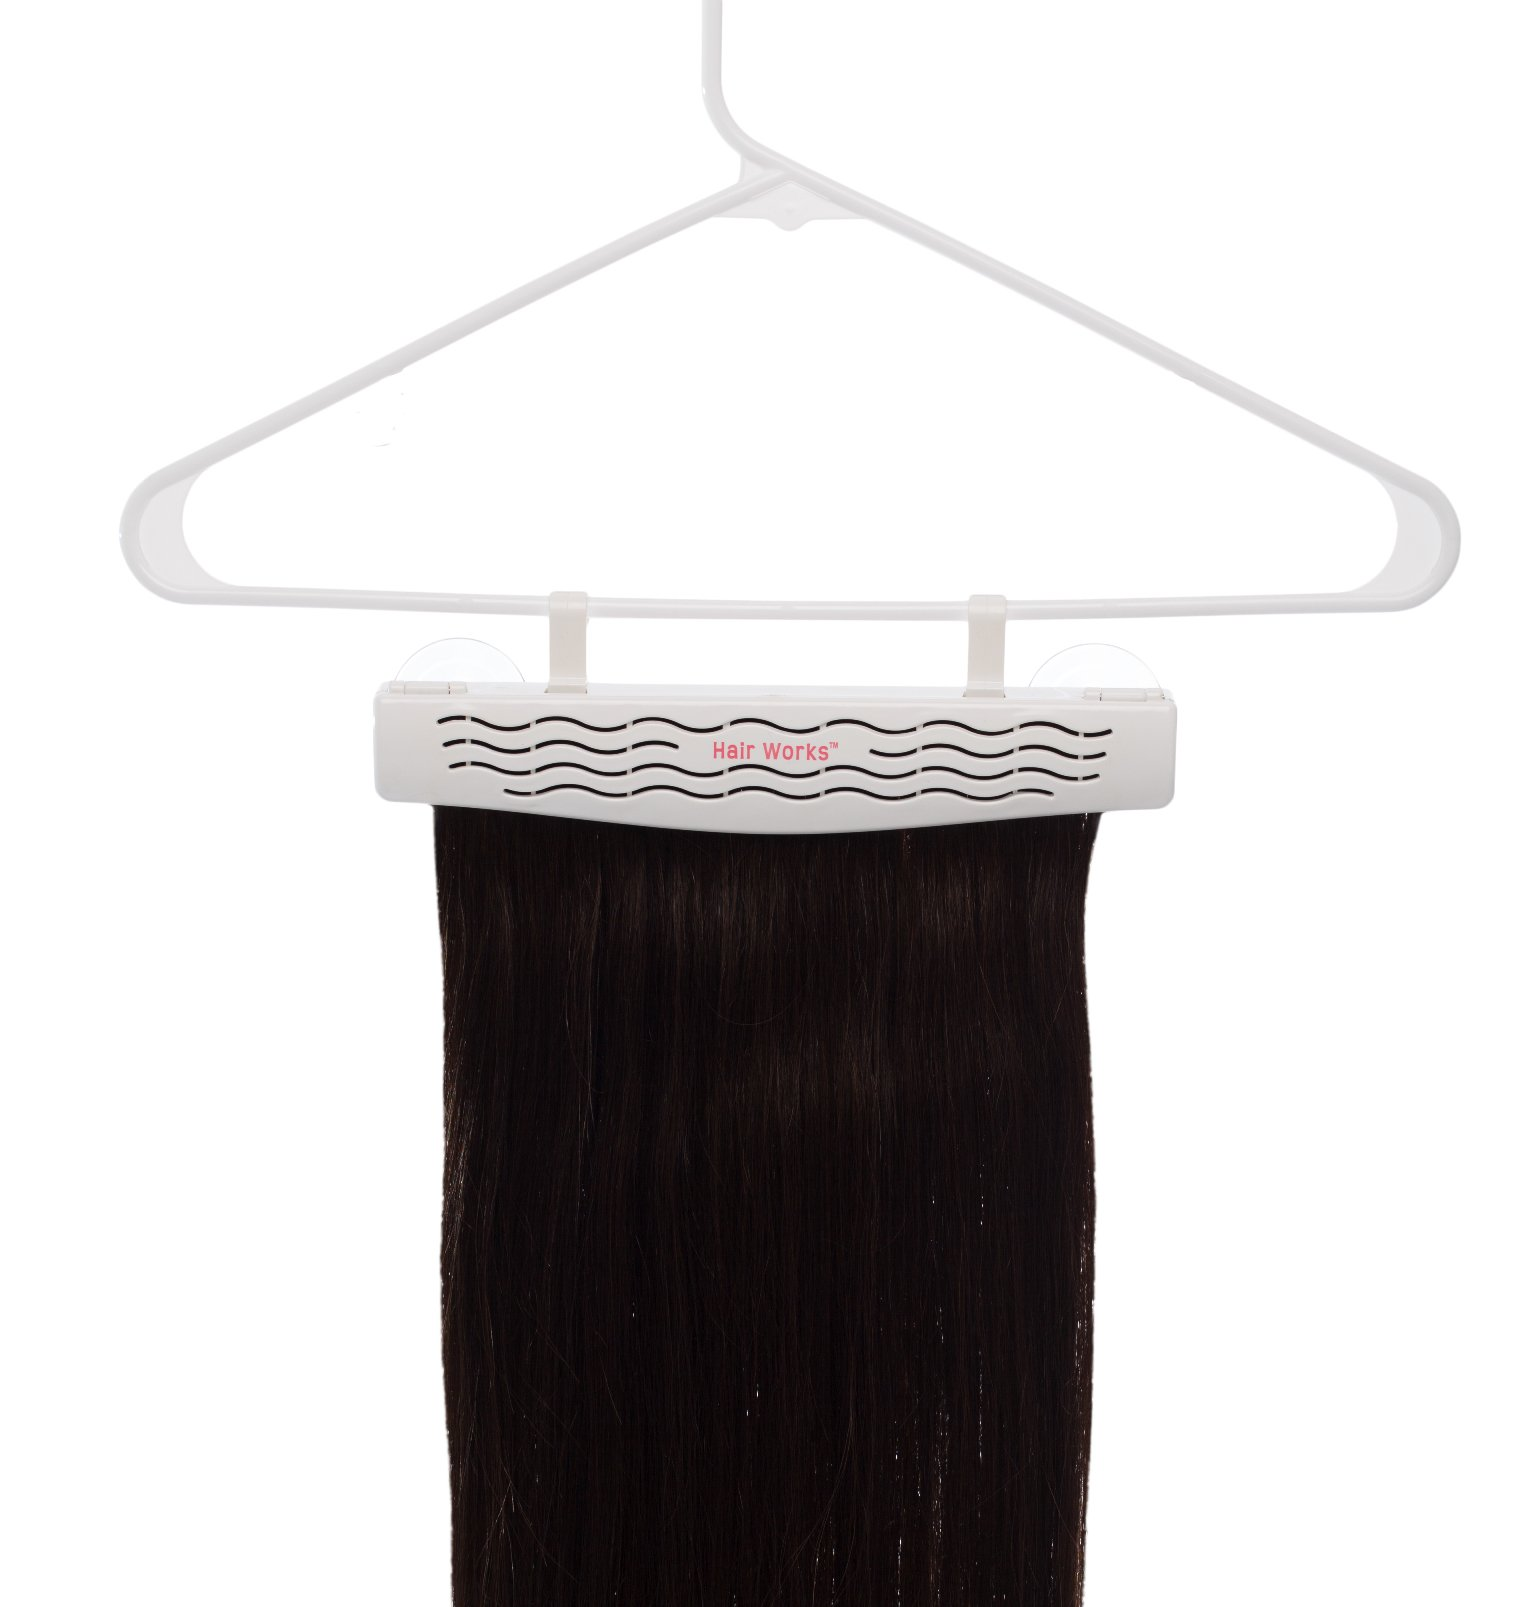 Hair Works 4-in-1 Hair Extension Style Caddy - Lightweight, Waterproof and Portable, This Hair Extension Holder Is Designed To Securely Hold Your Extensions While You Wash, Style, Pack and Store Them by Hair Works (Image #4)